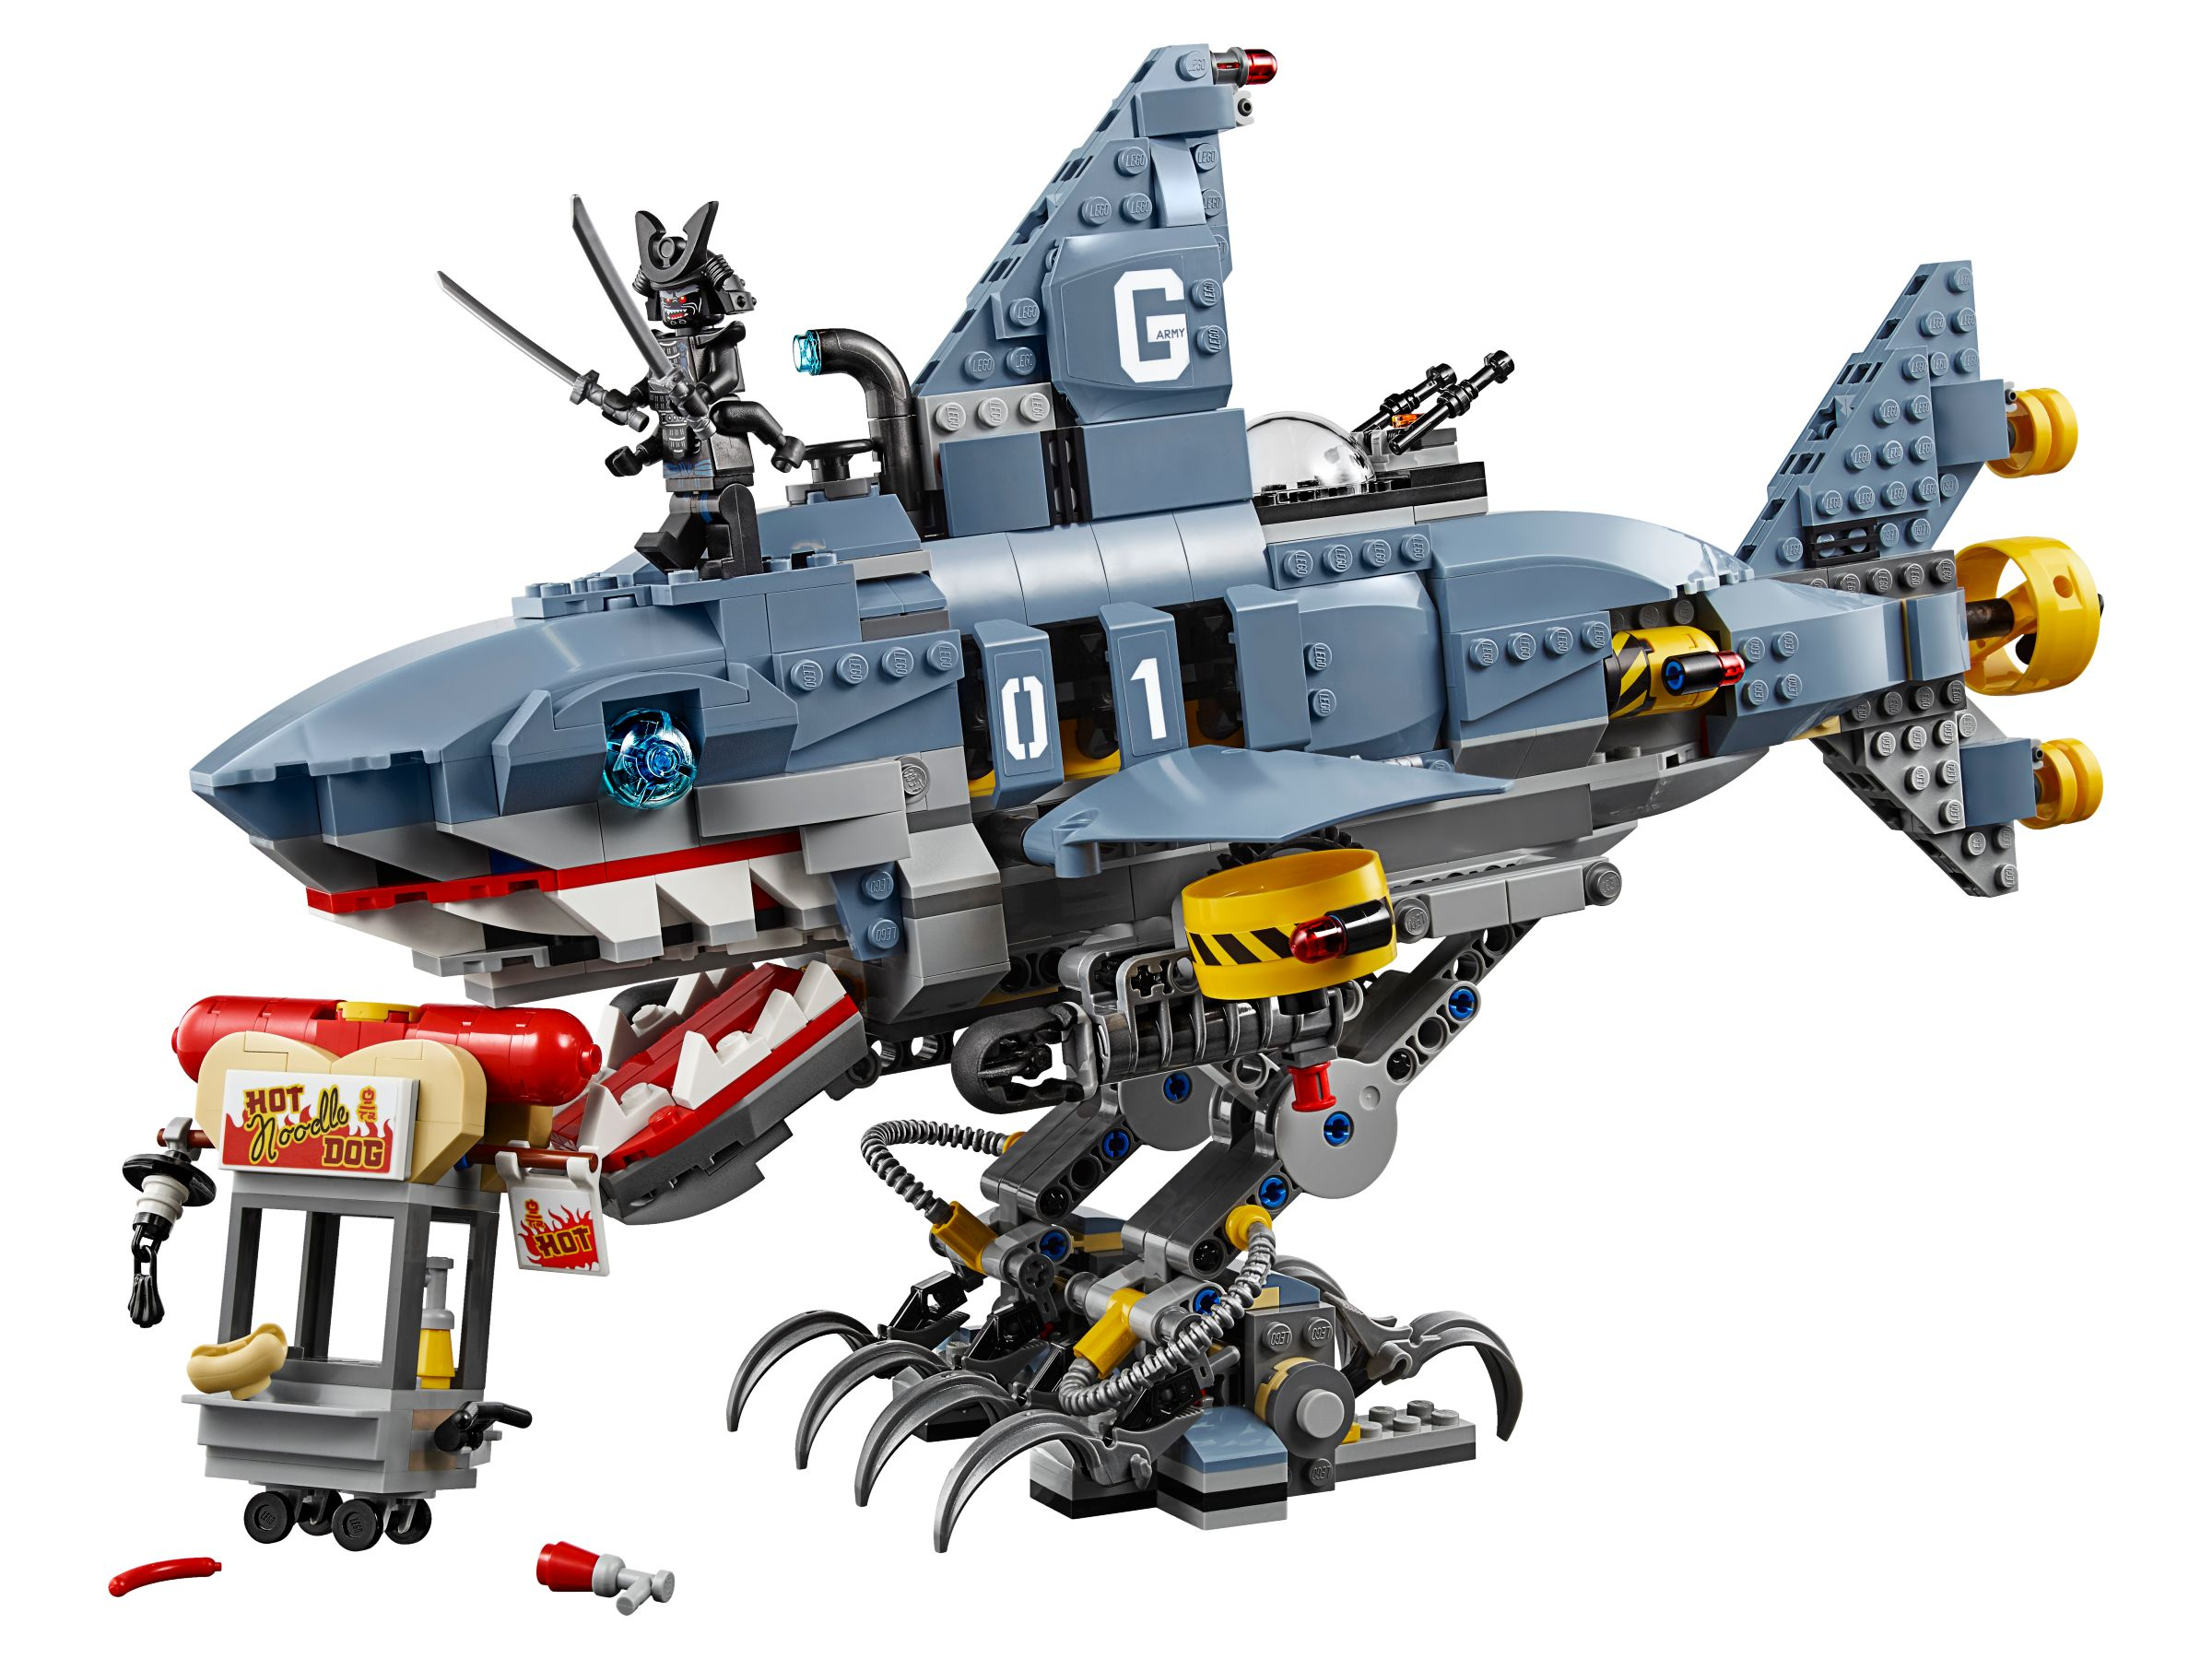 LEGO The LEGO Ninjago Movie 70656 Garmadon, Garmadon, GARMADON! LEGO_70656_alt3.jpg